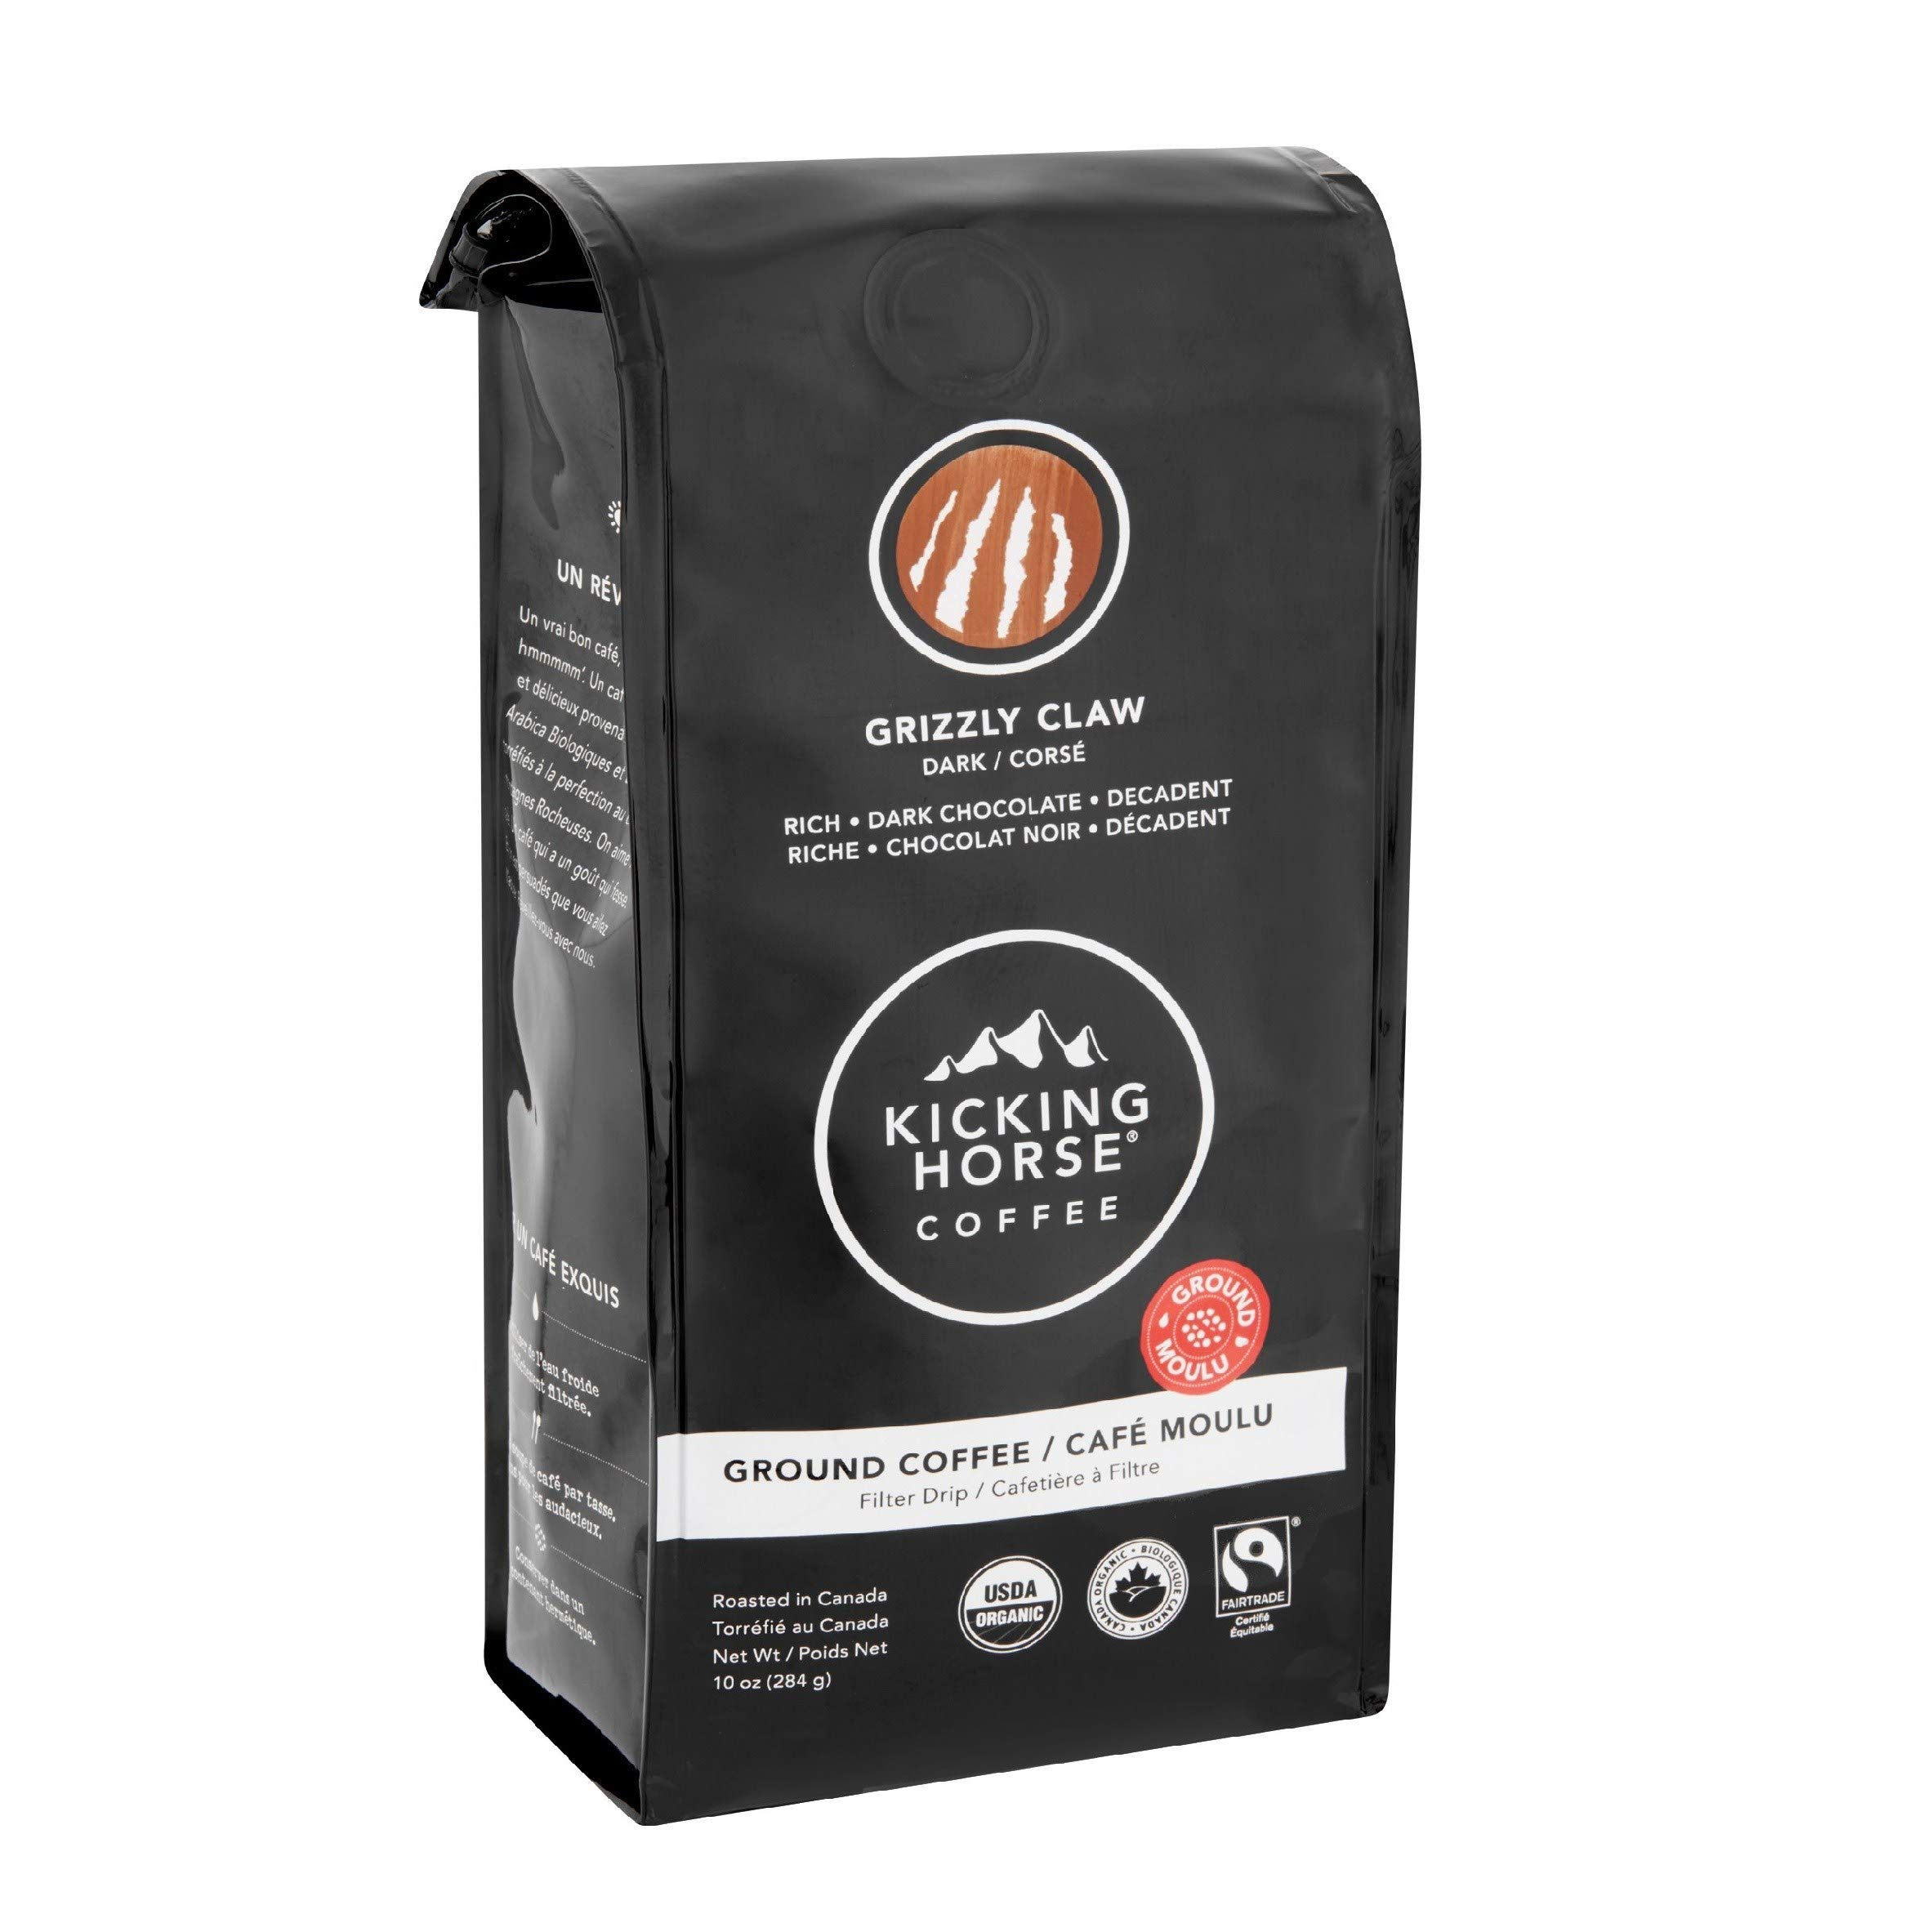 Kicking Horse Dark Chocolate Ground Coffee, Grizzly Claw - (1-Pack) - 284 Grams (10 oz) Dark Ground Coffee, Imported Fairtrade Certified Coffee